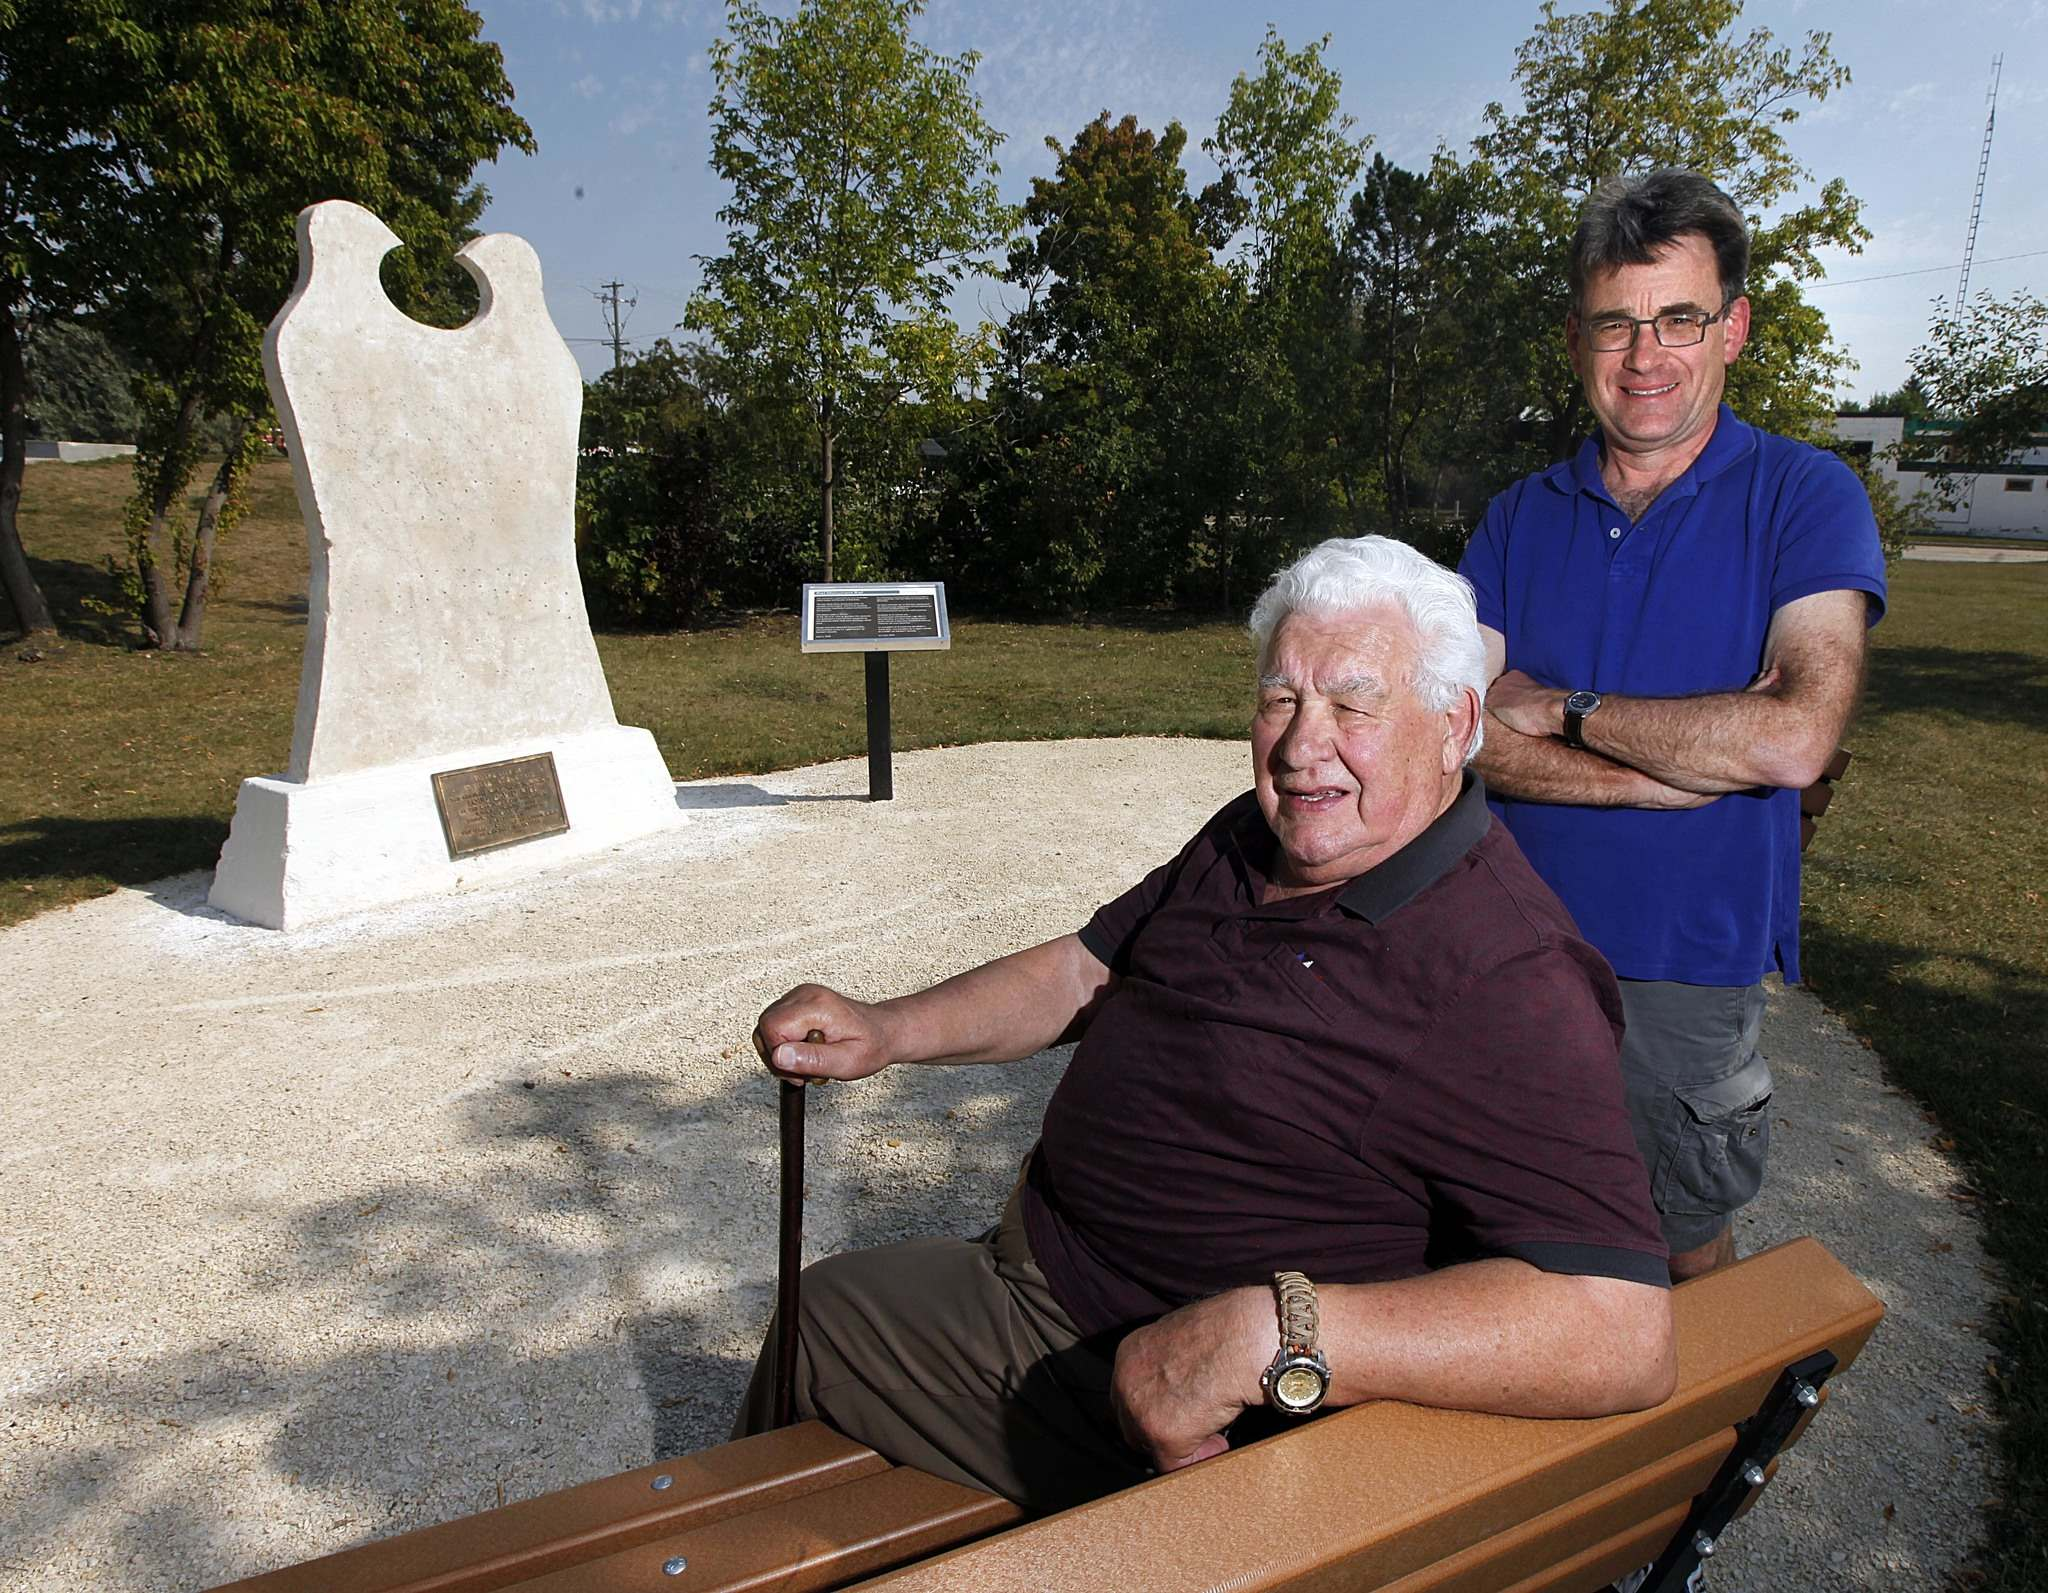 <p>Former city counselor and Elder with the Union Nationale Metisse, Guy Savoie, left and current city counselor Brian Mayes pose beside a repositioned and rejuvinated statue commemorating Louis Riel near St Annes Rd and Meadowood Ave.